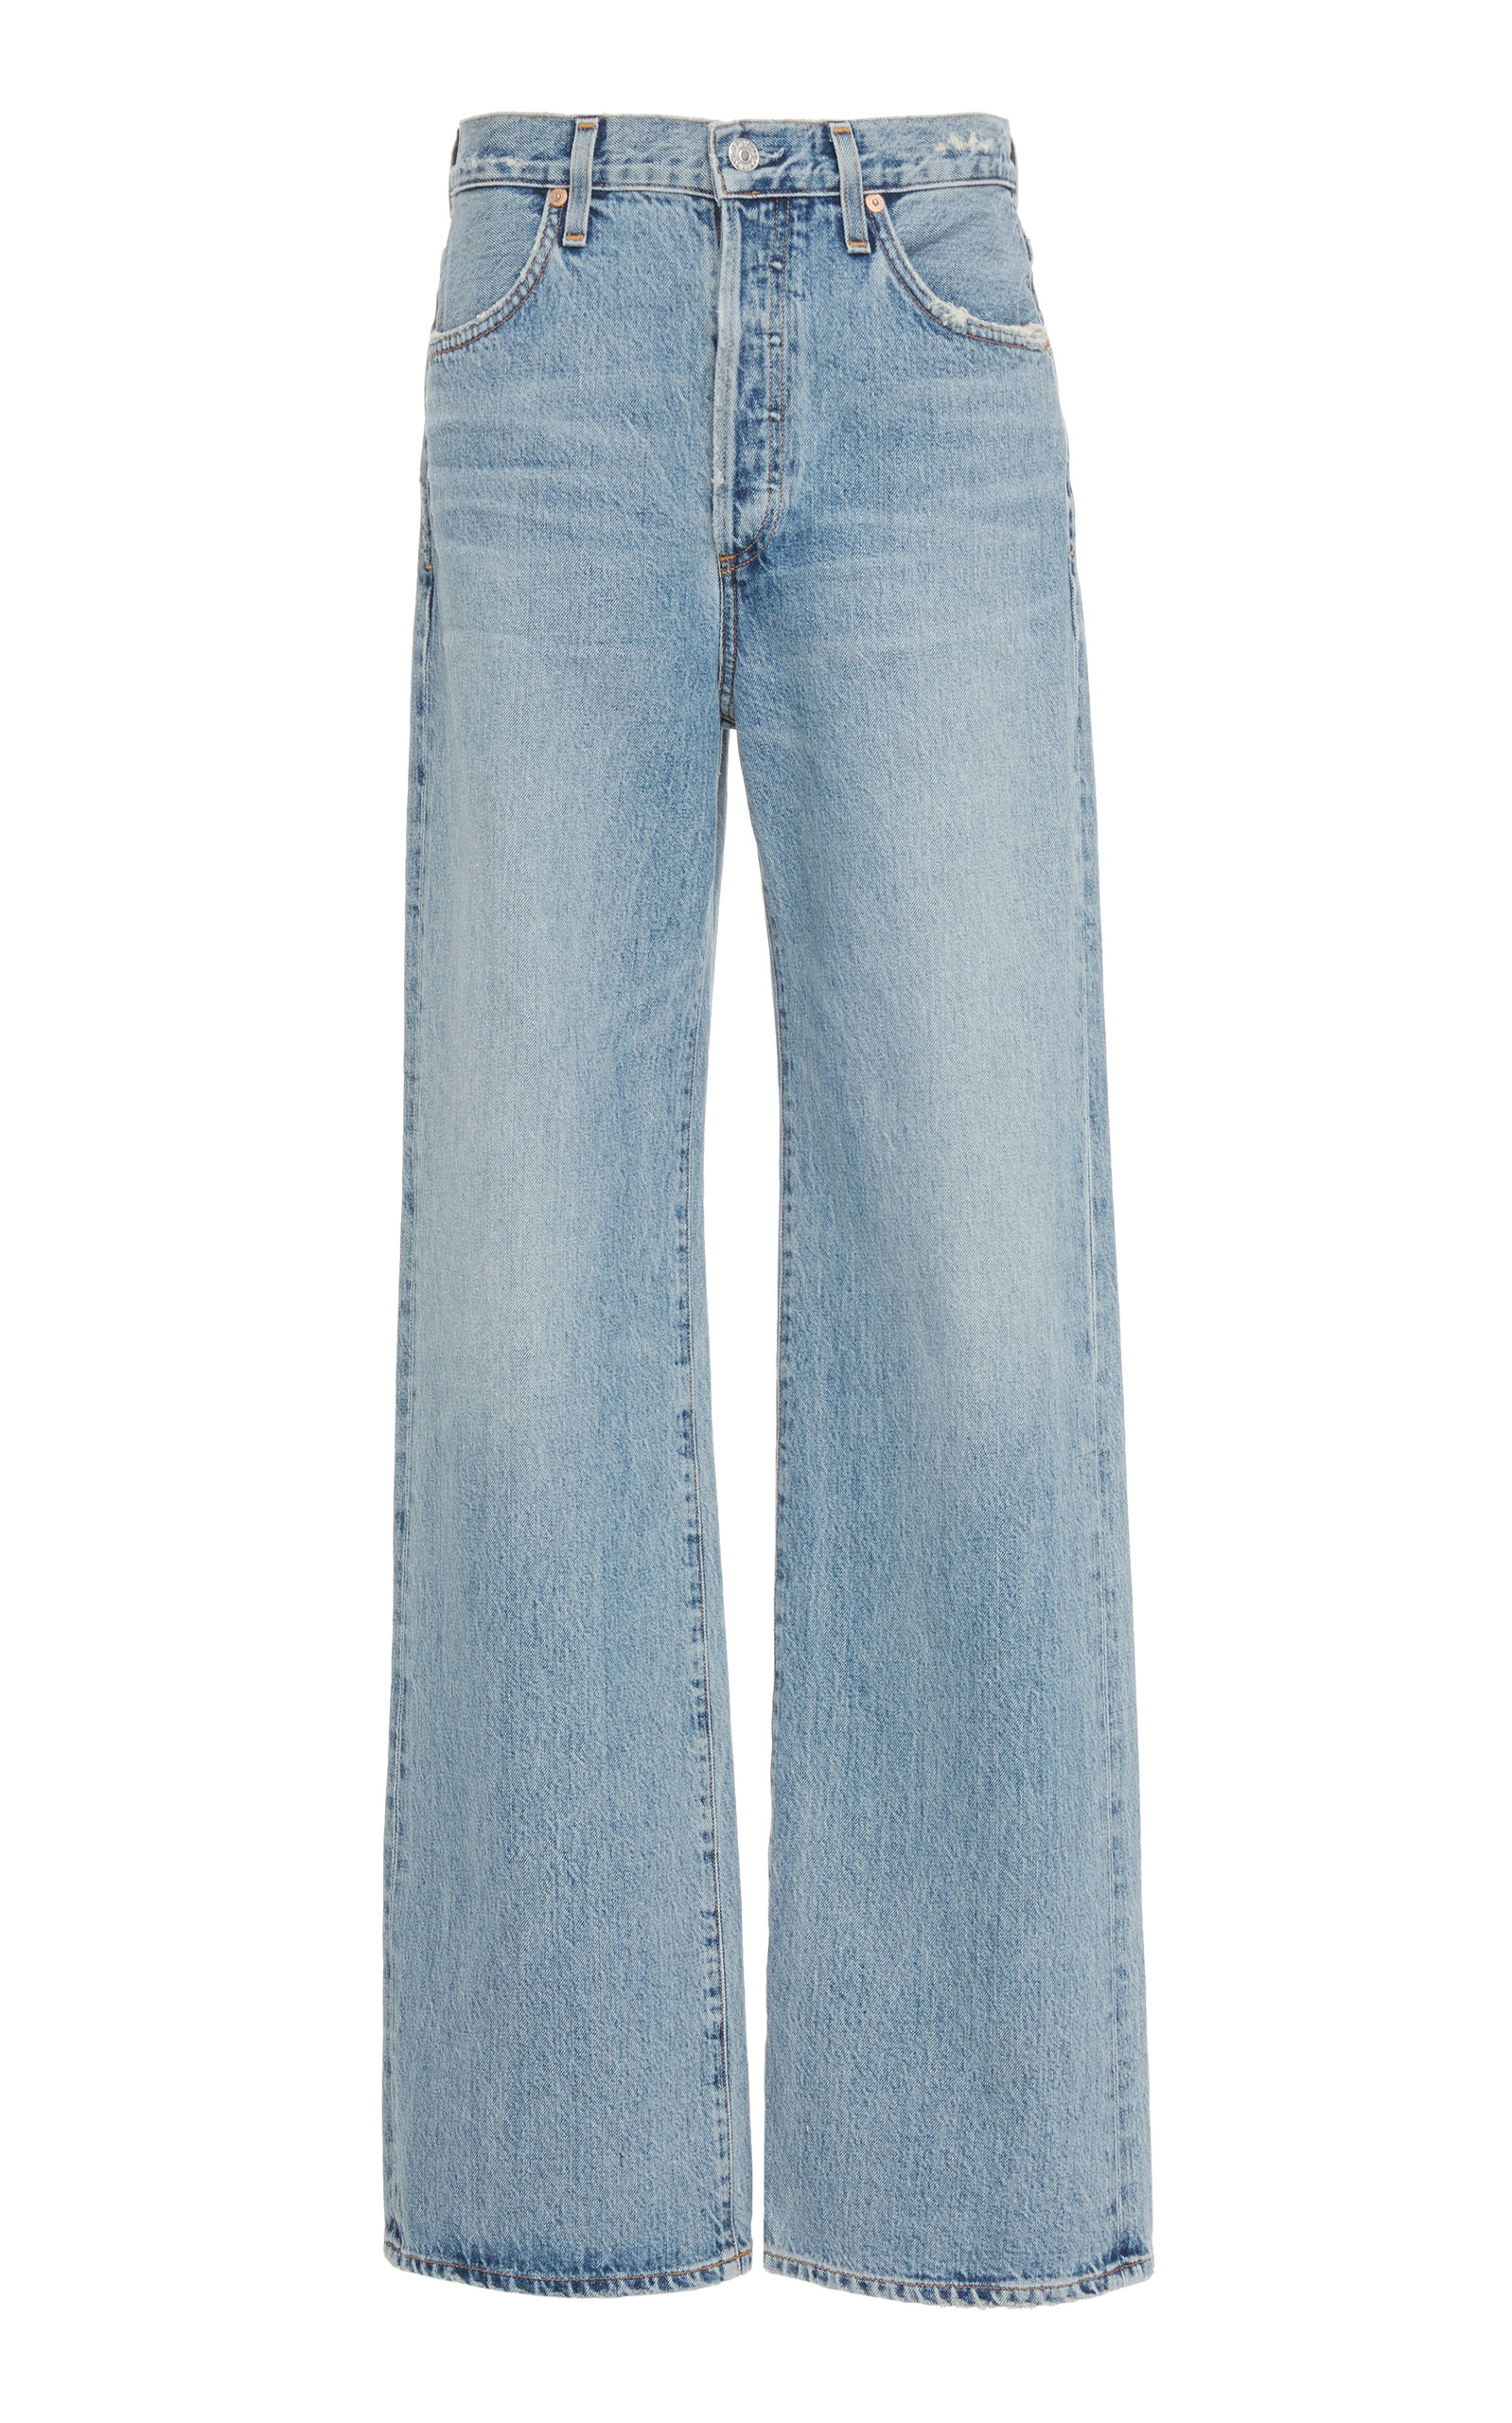 bcd3bed4157b Annina High-Rise Wide-Leg Jeans by Citizens of Humanity   Moda Operandi